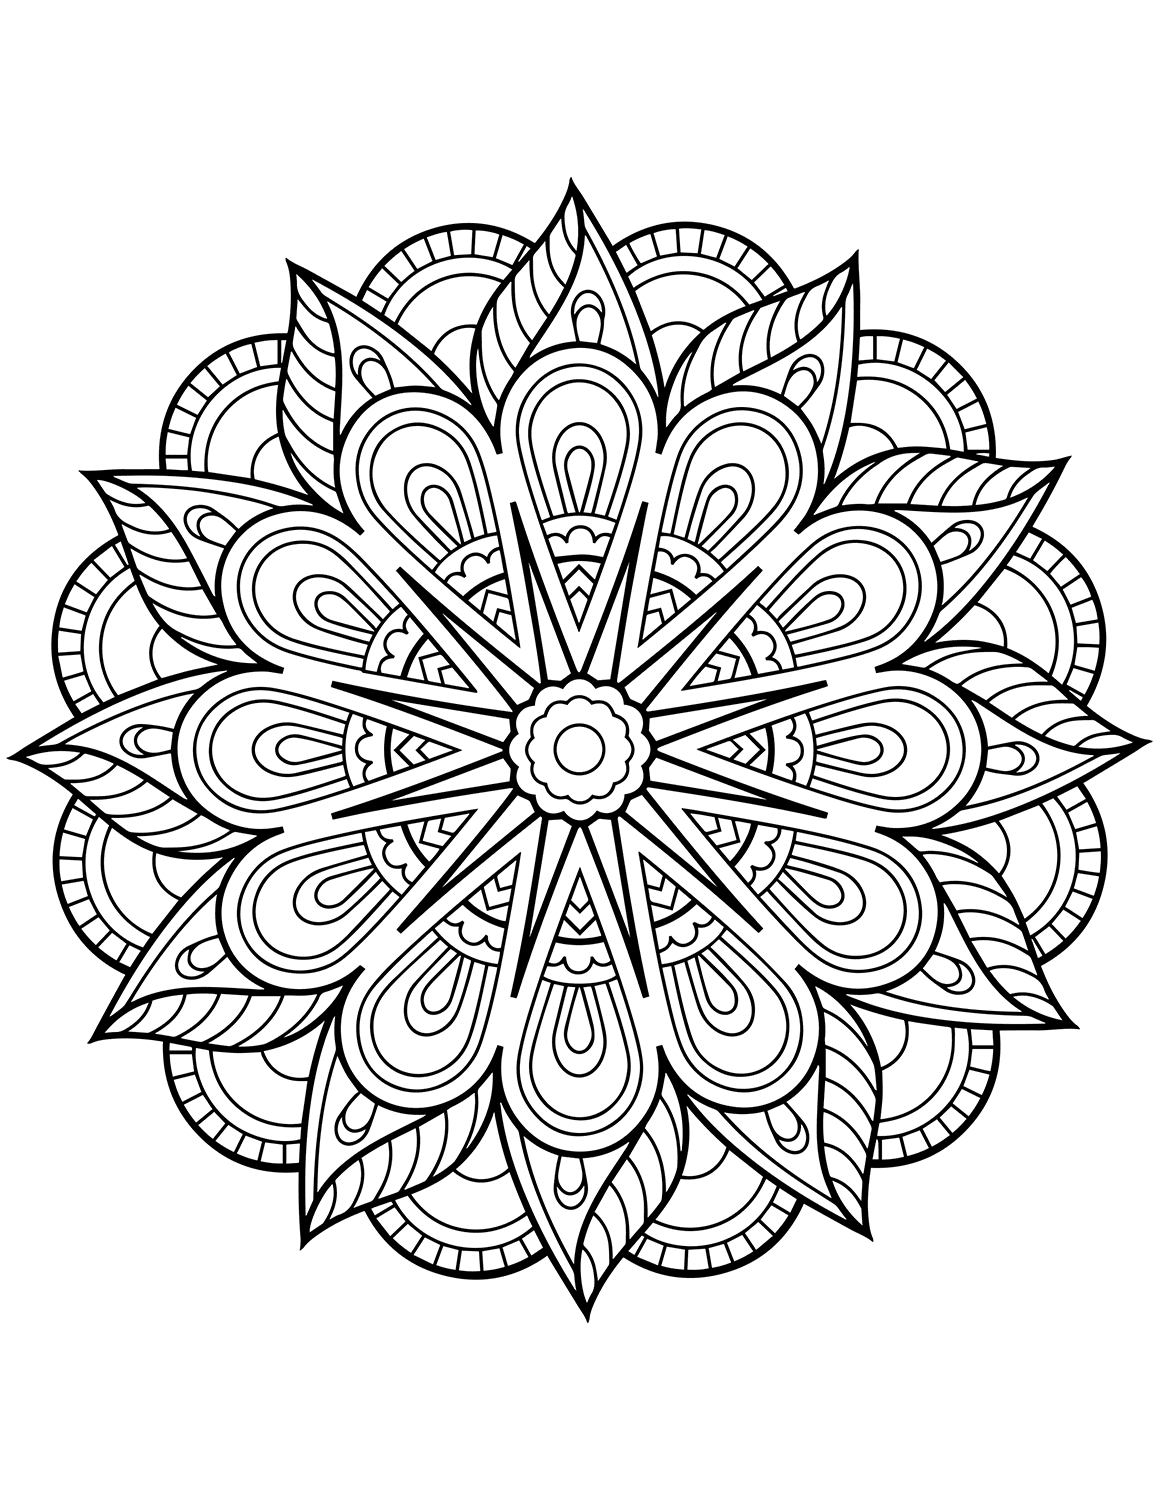 mandala coloring pages for adults flower mandala coloring pages best coloring pages for kids coloring pages for adults mandala